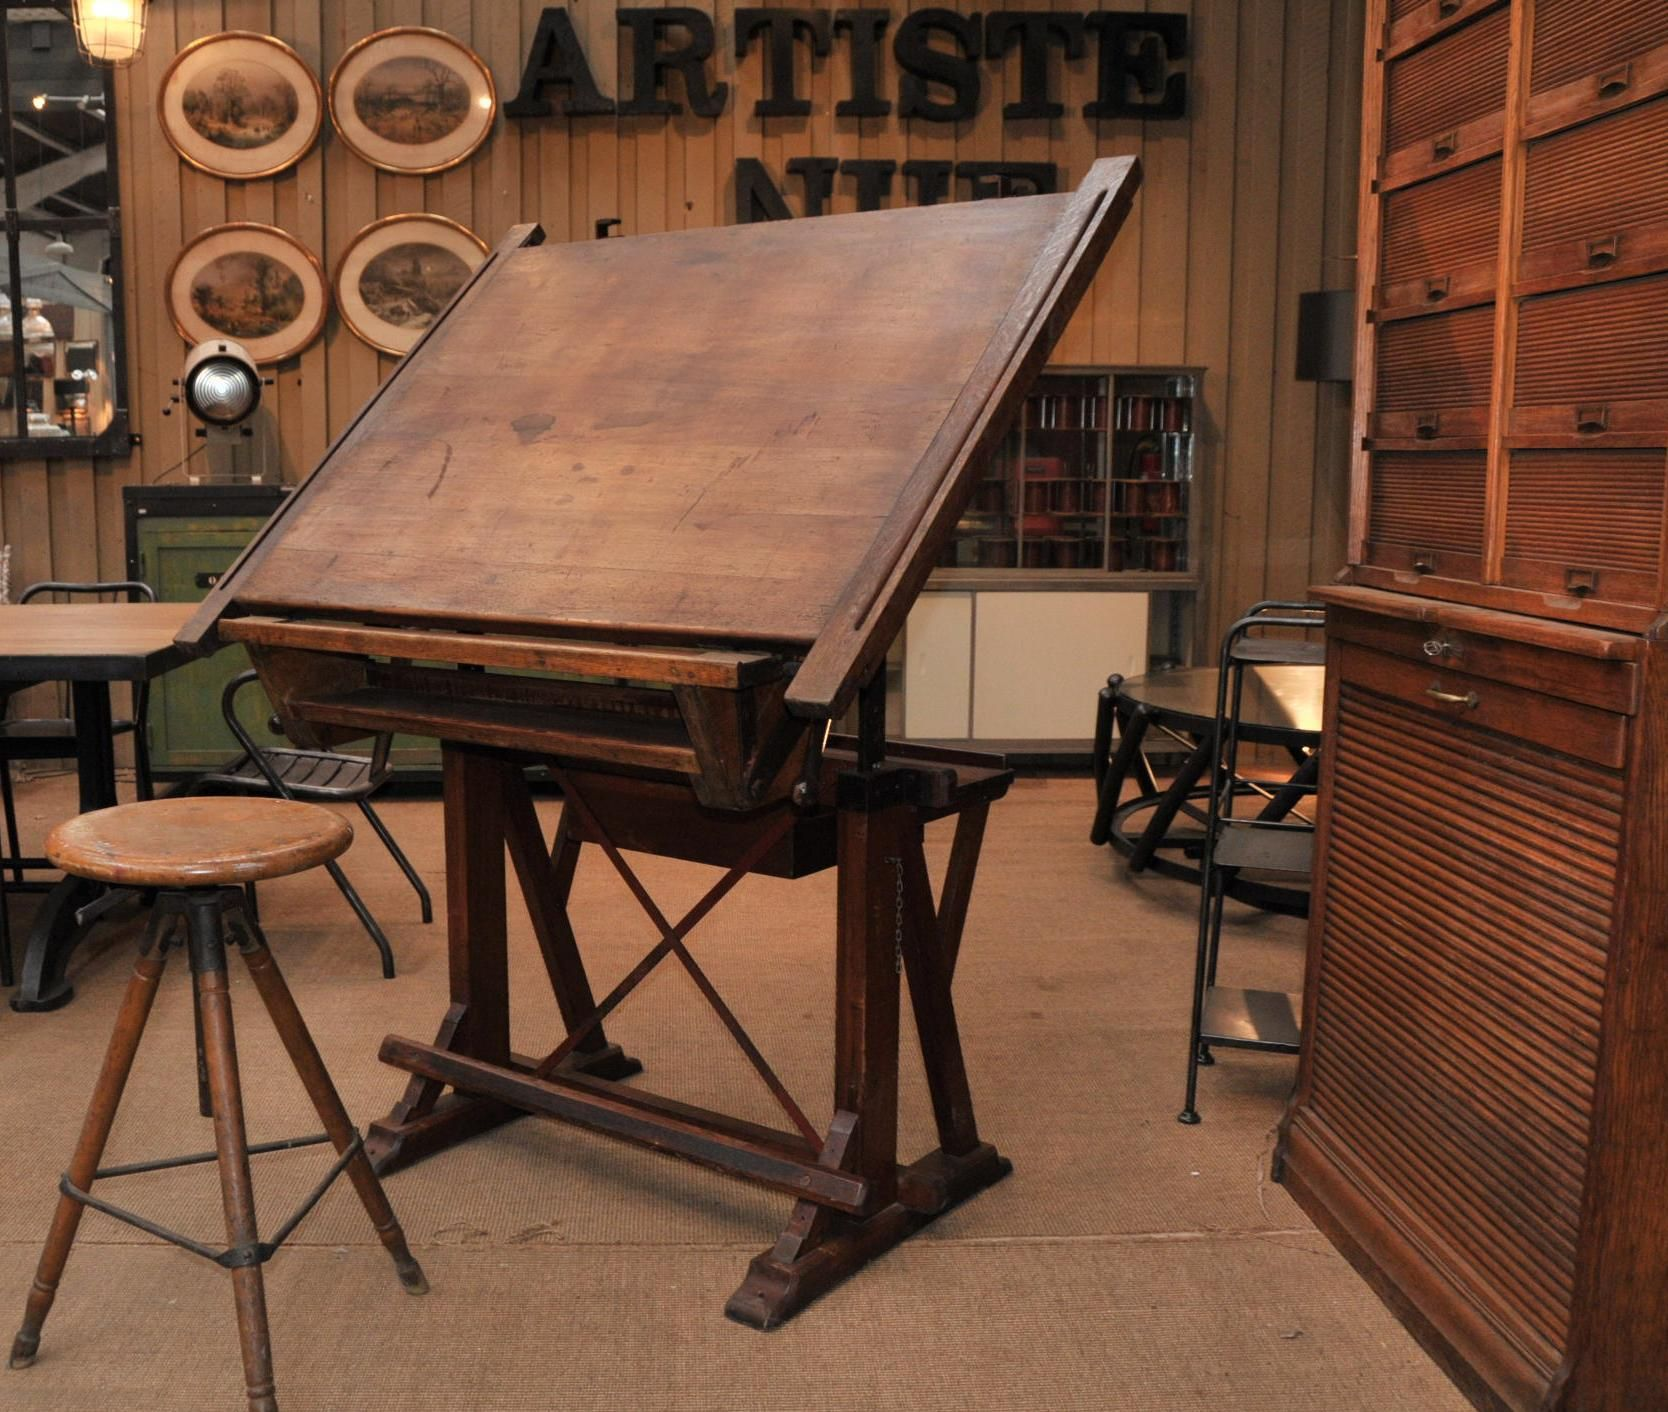 Cool Drafting Table Le Grenier Roubaix France Stock Ancienne Table D